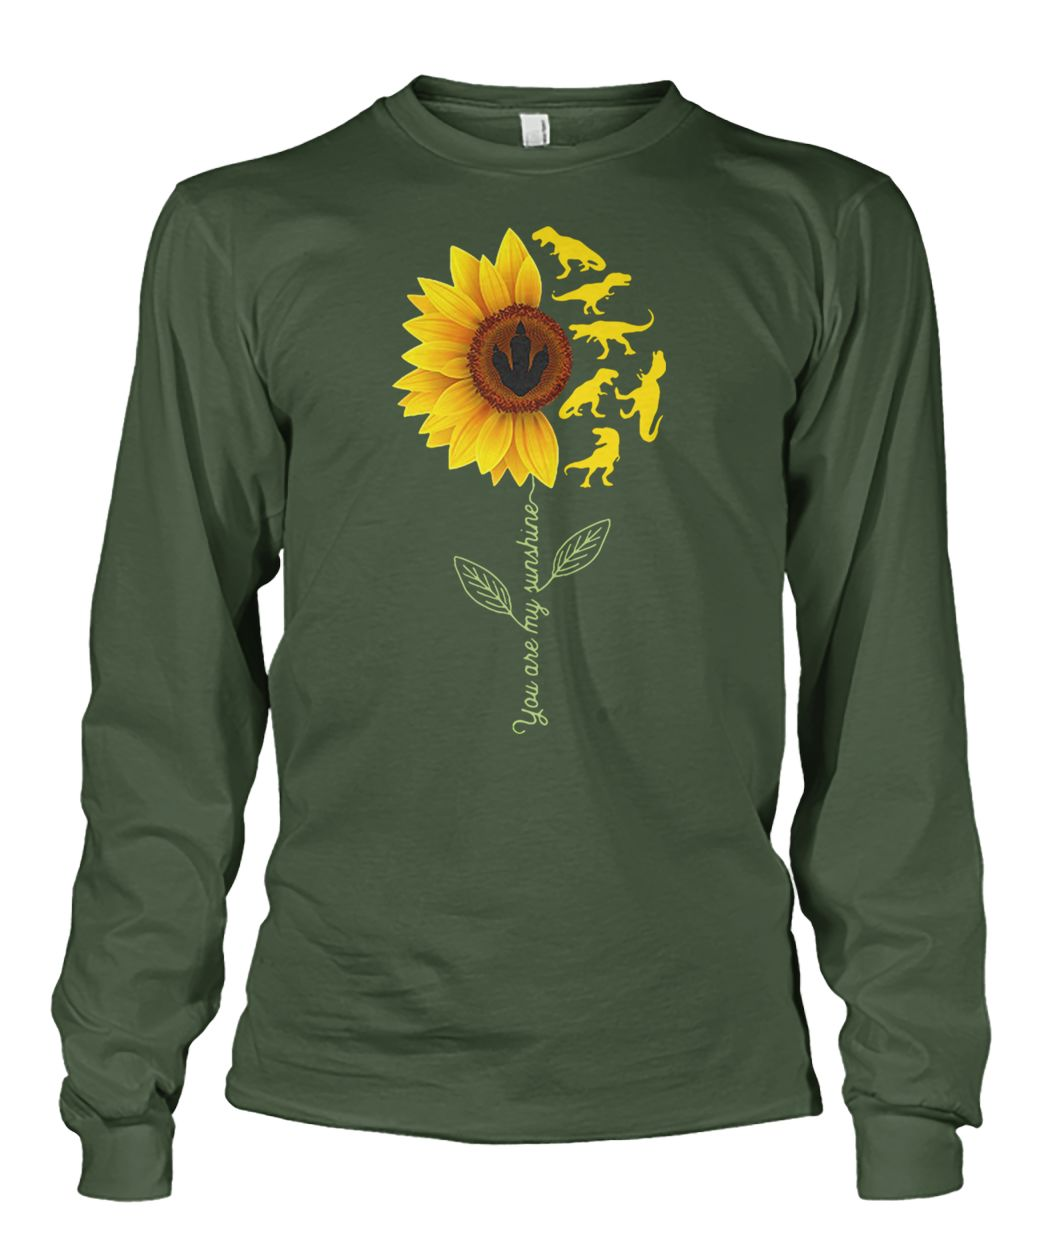 Dinosaurs sunflower you are my sunshine unisex long sleeve